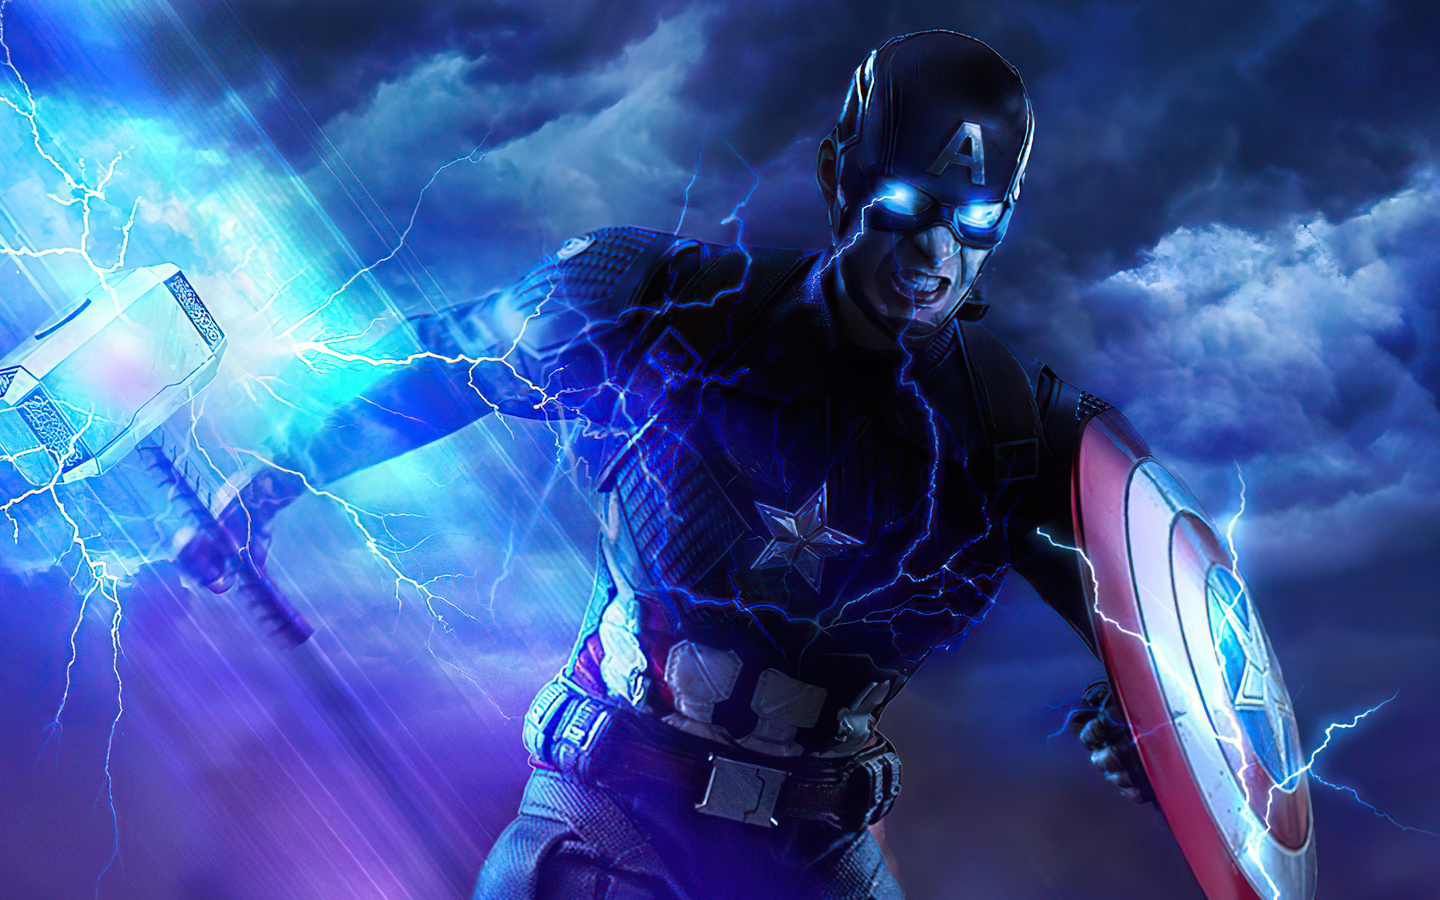 captain-america-with-hammer-and-shield-4k-4t.jpg